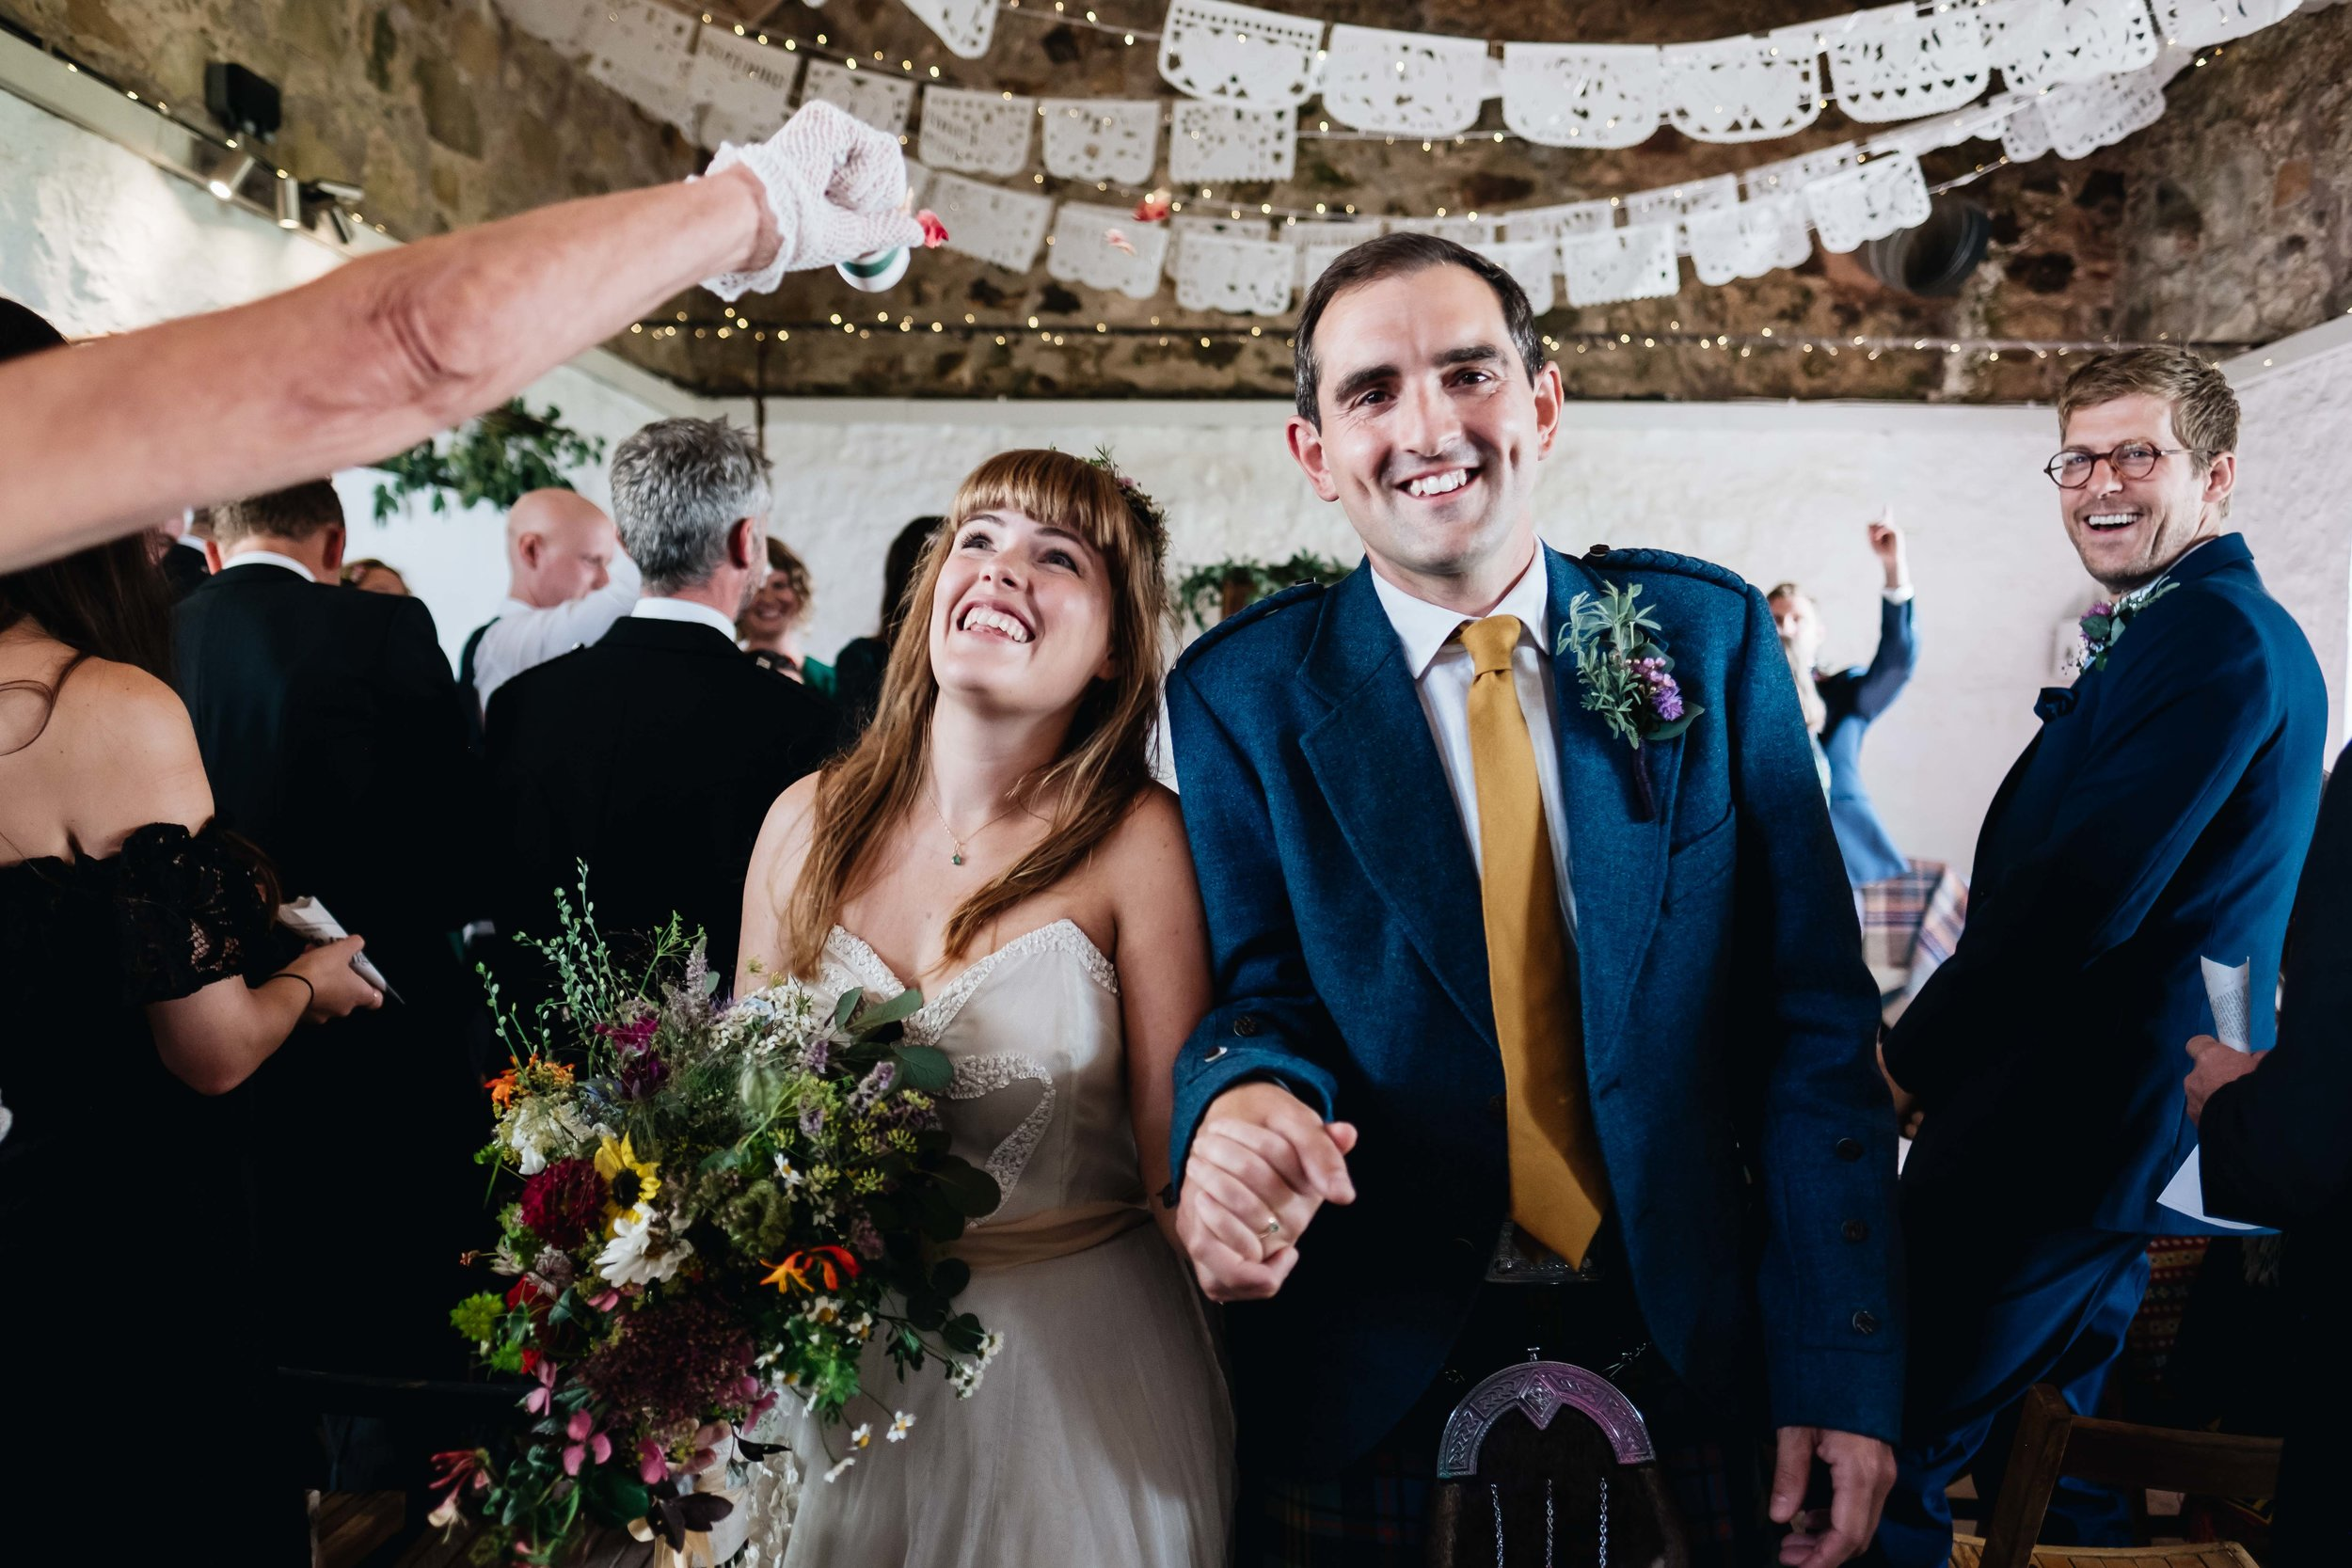 guests throwing confetti as bride and groom walking down the aisle